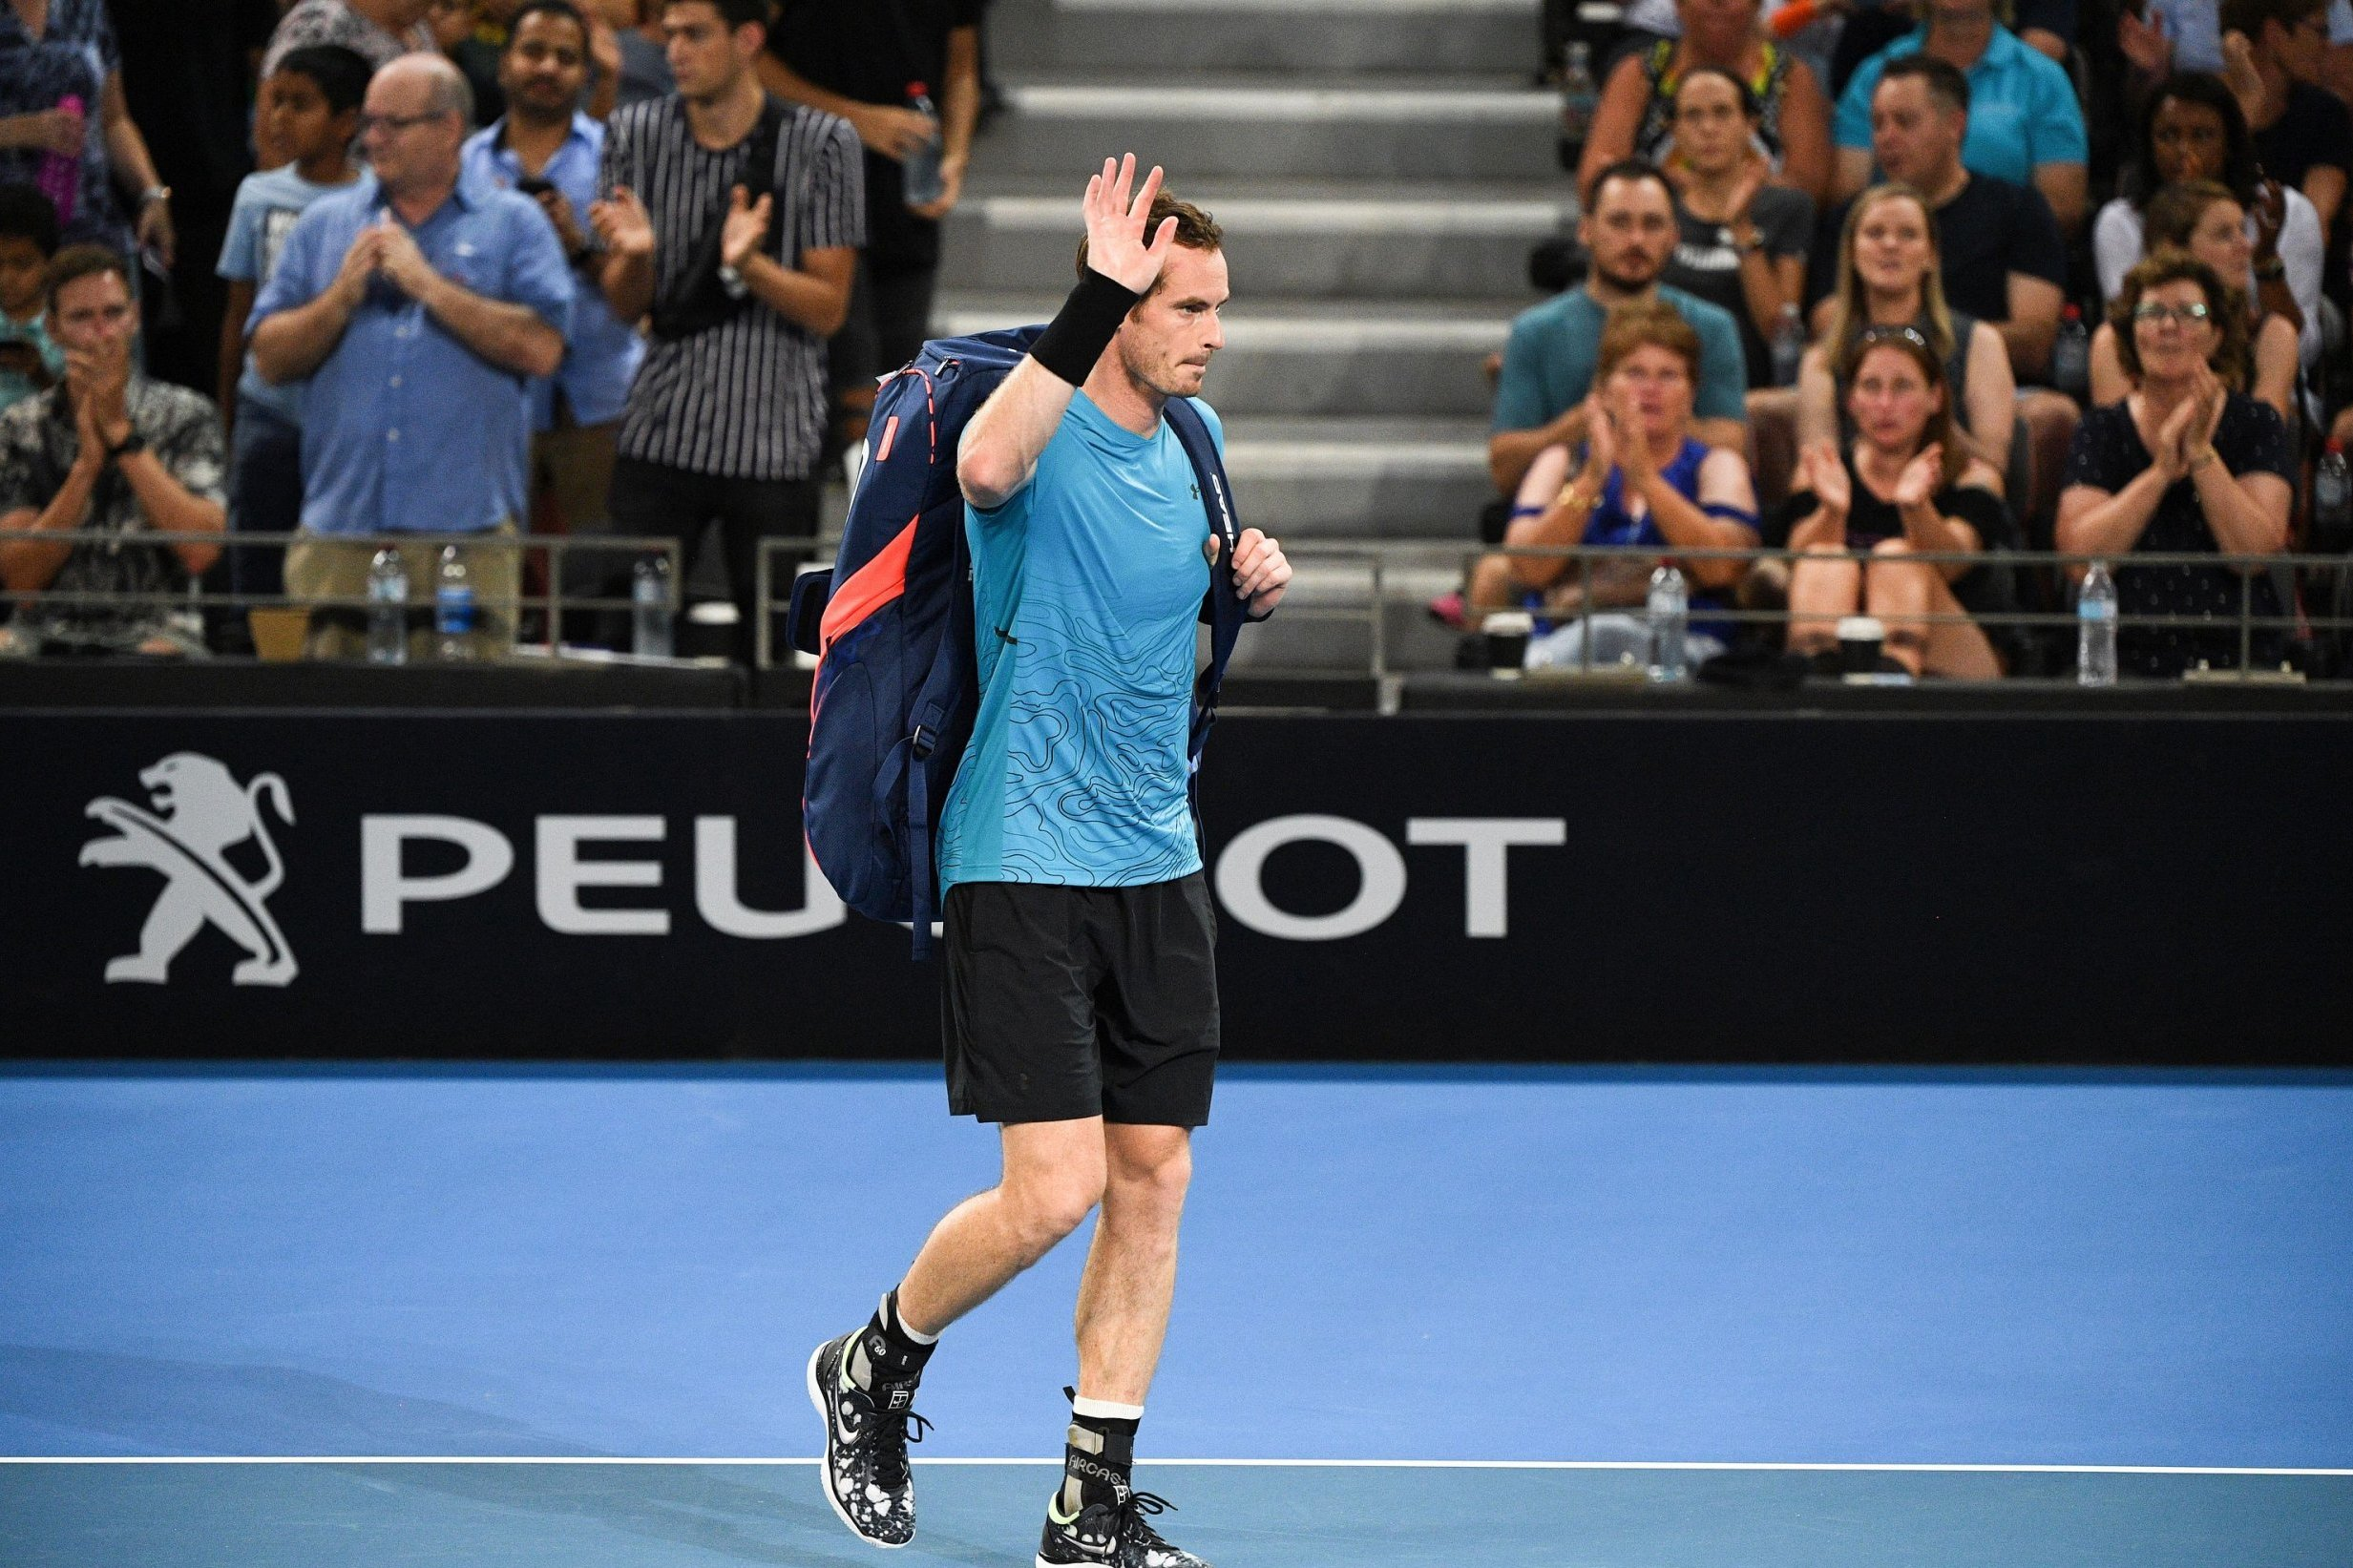 The Australian Open will be Murray's last event as a professional